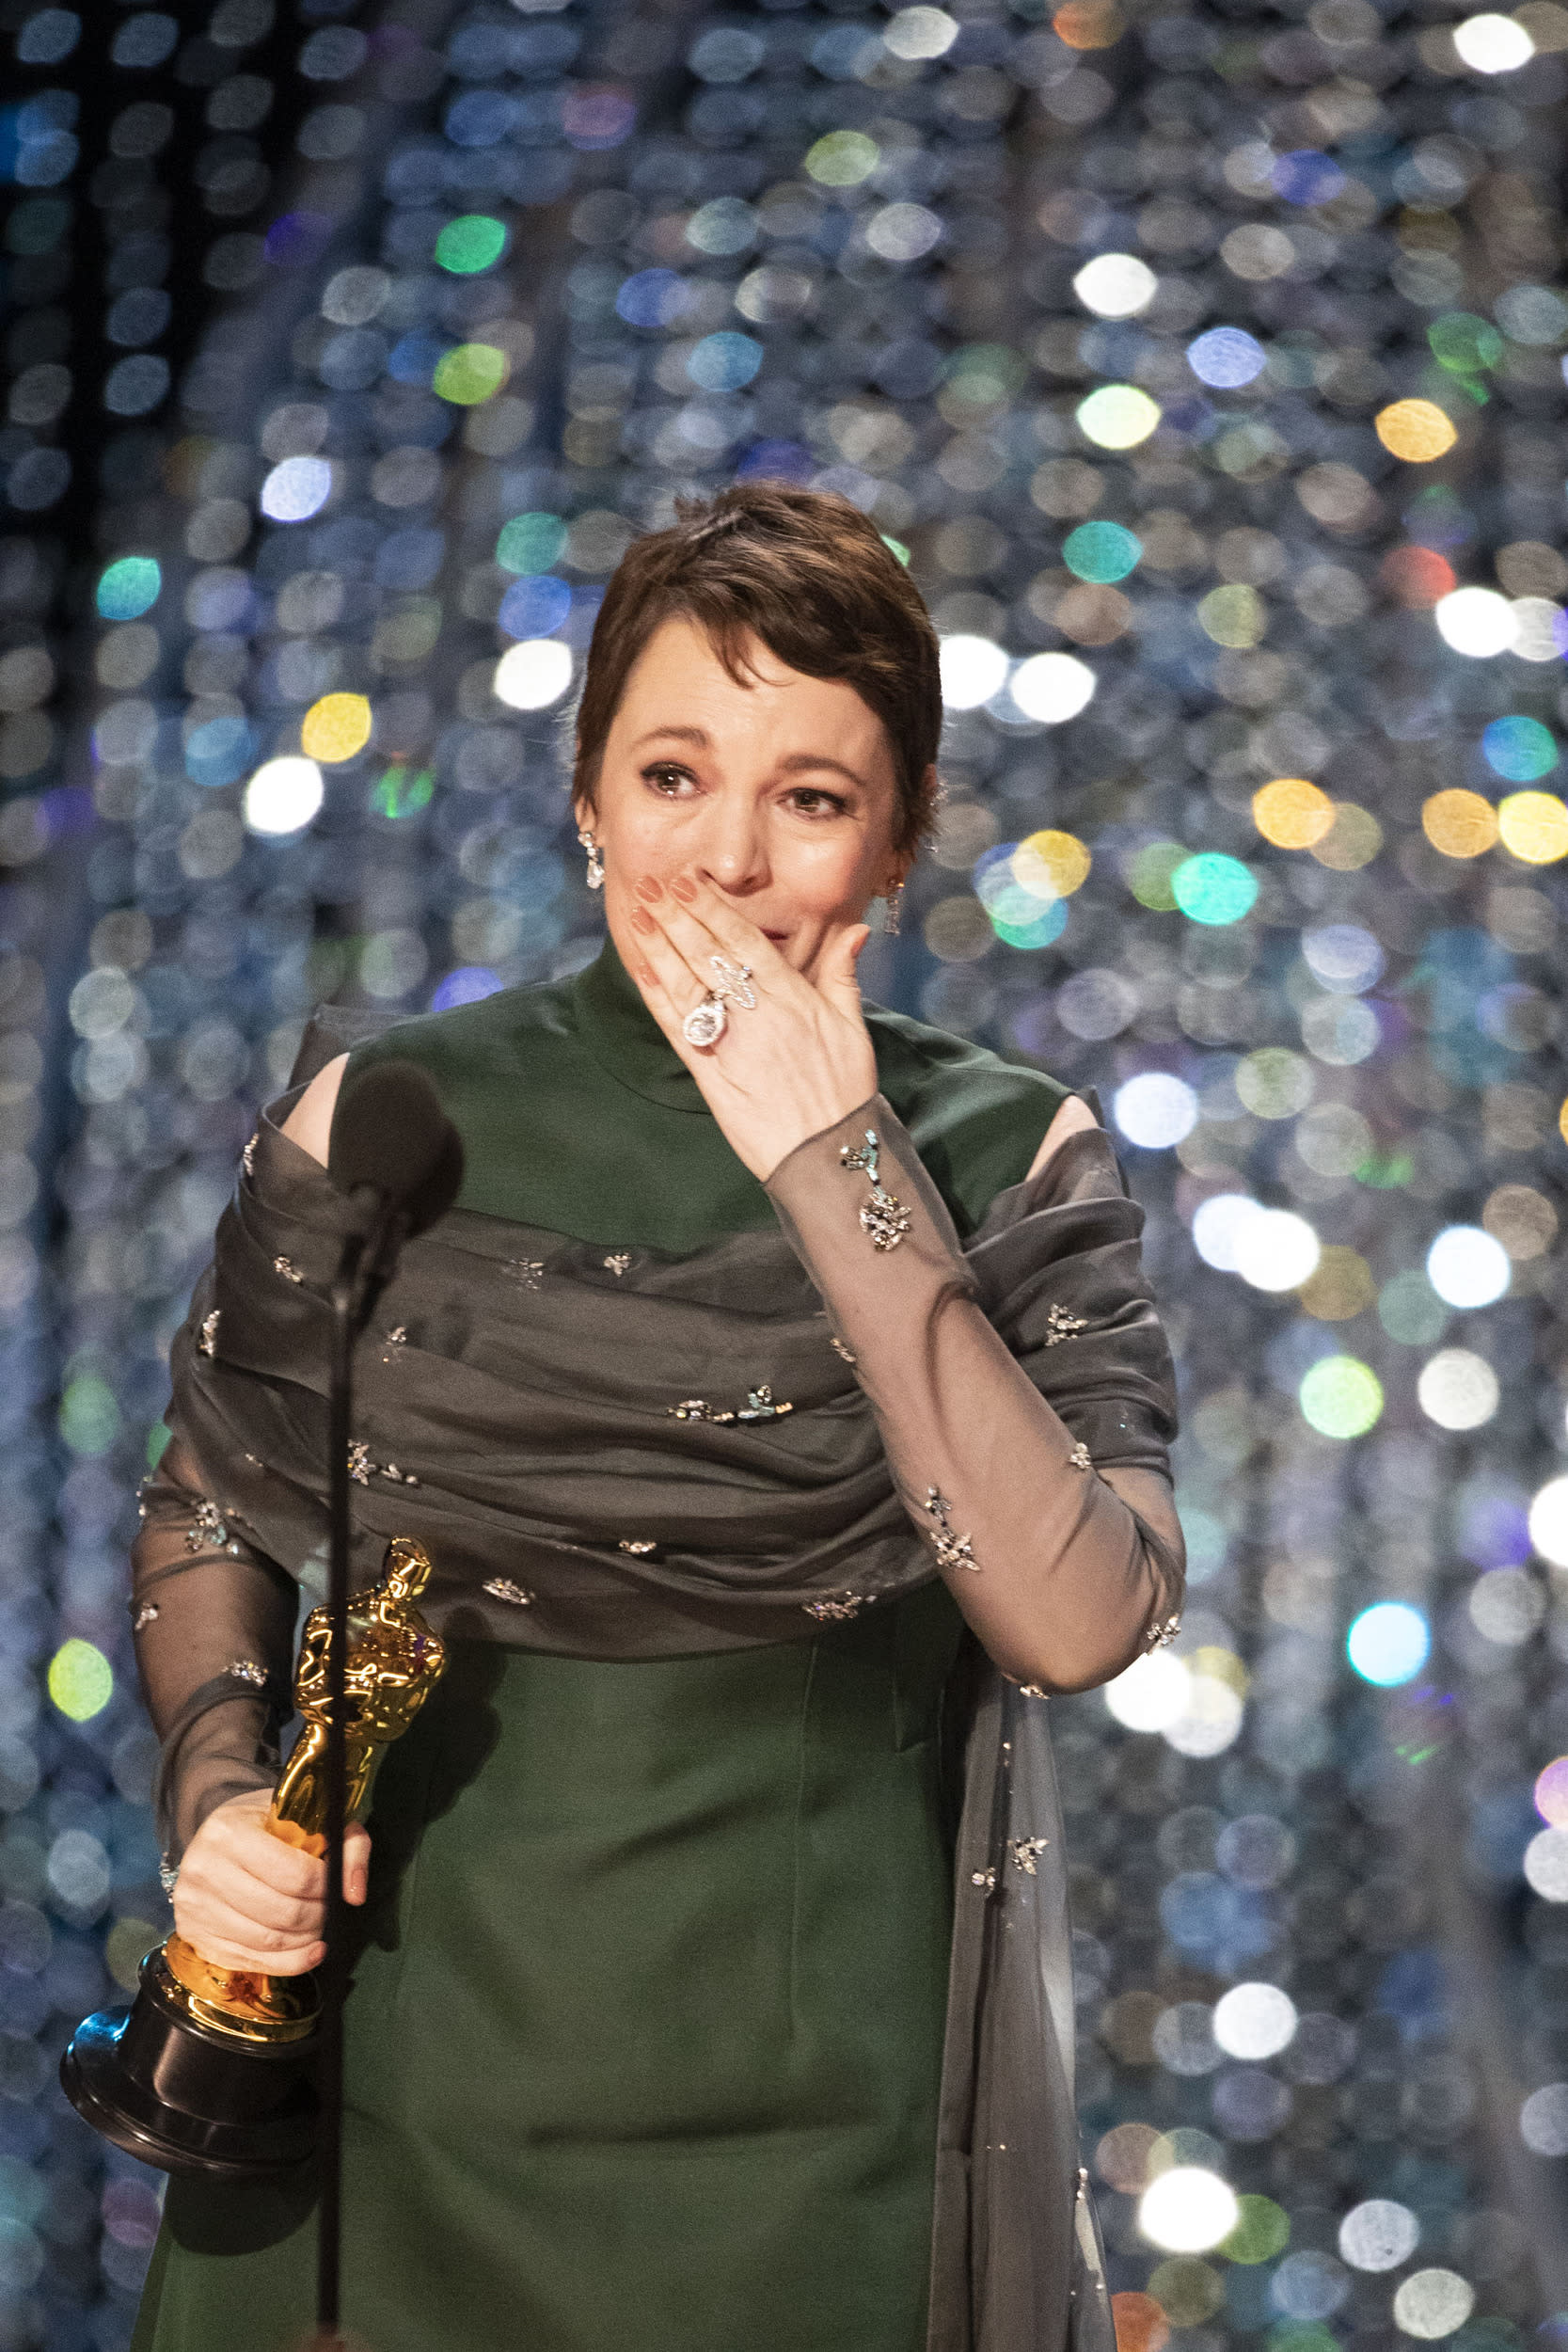 THE OSCARS® - The 91st Oscars® broadcasts live on Sunday, Feb. 24, 2019, at the Dolby Theatre® at Hollywood & Highland Center® in Hollywood and will be televised live on The ABC Television Network at 8:00 p.m. EST/5:00 p.m. PST.  (Craig Sjodin via Getty Images) OLIVIA COLMAN